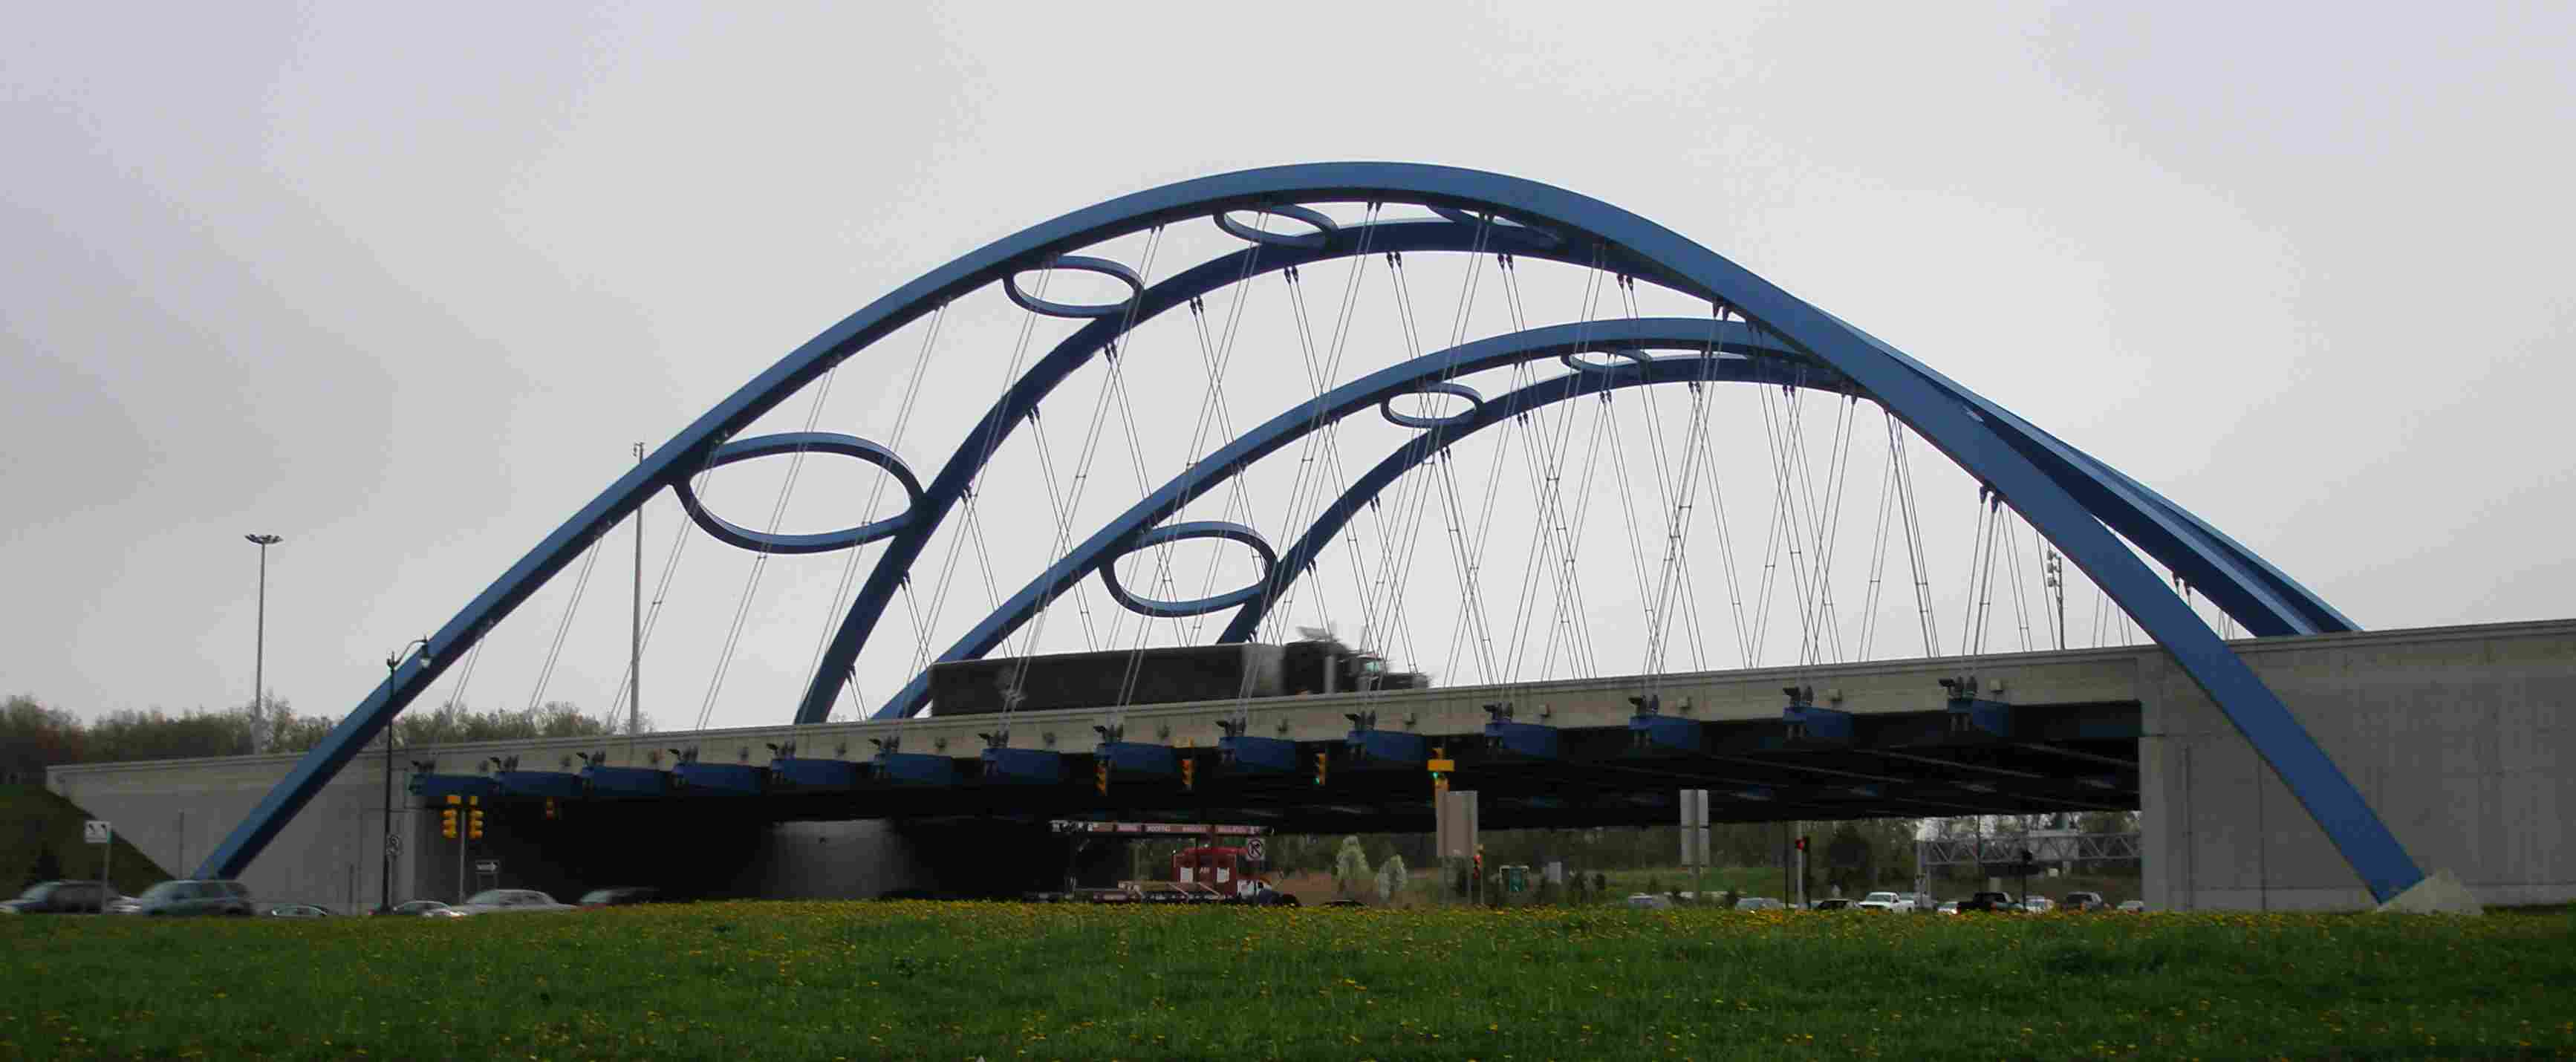 Kwame's and Bobbie's 'Bridge of Bucks' over Telegraph Road